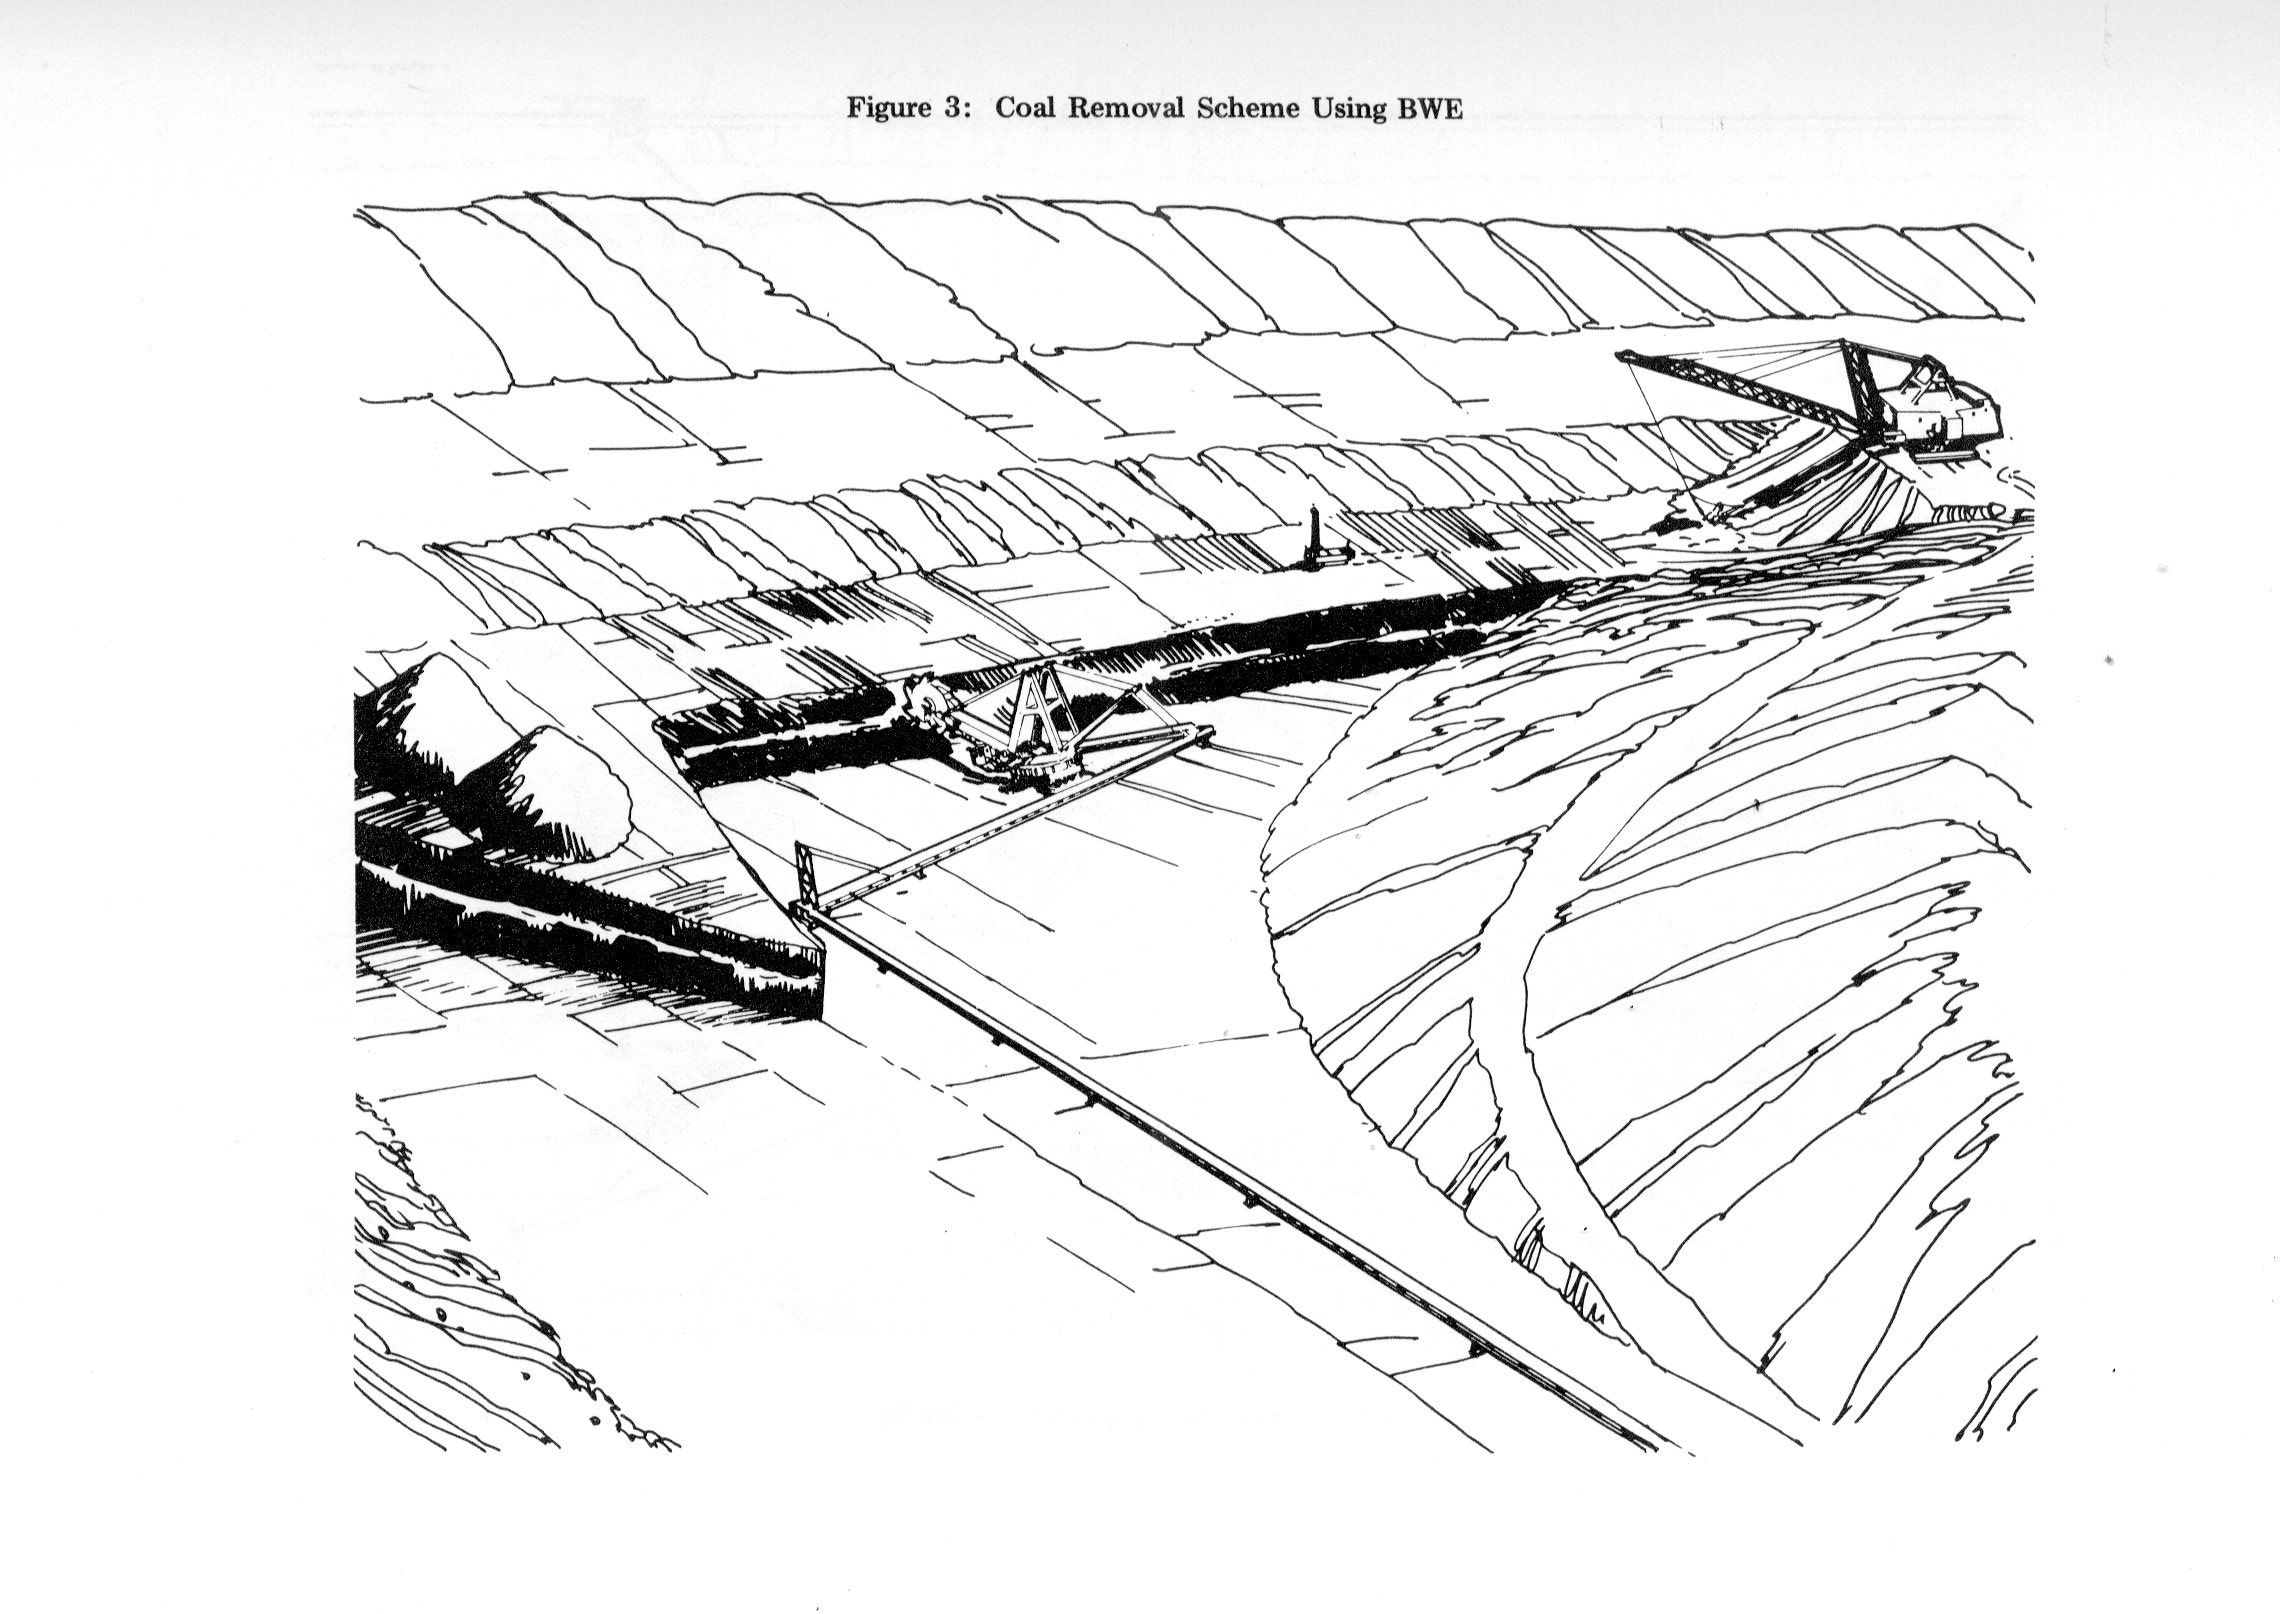 Fung, R. (1981). Surface coal mining technology